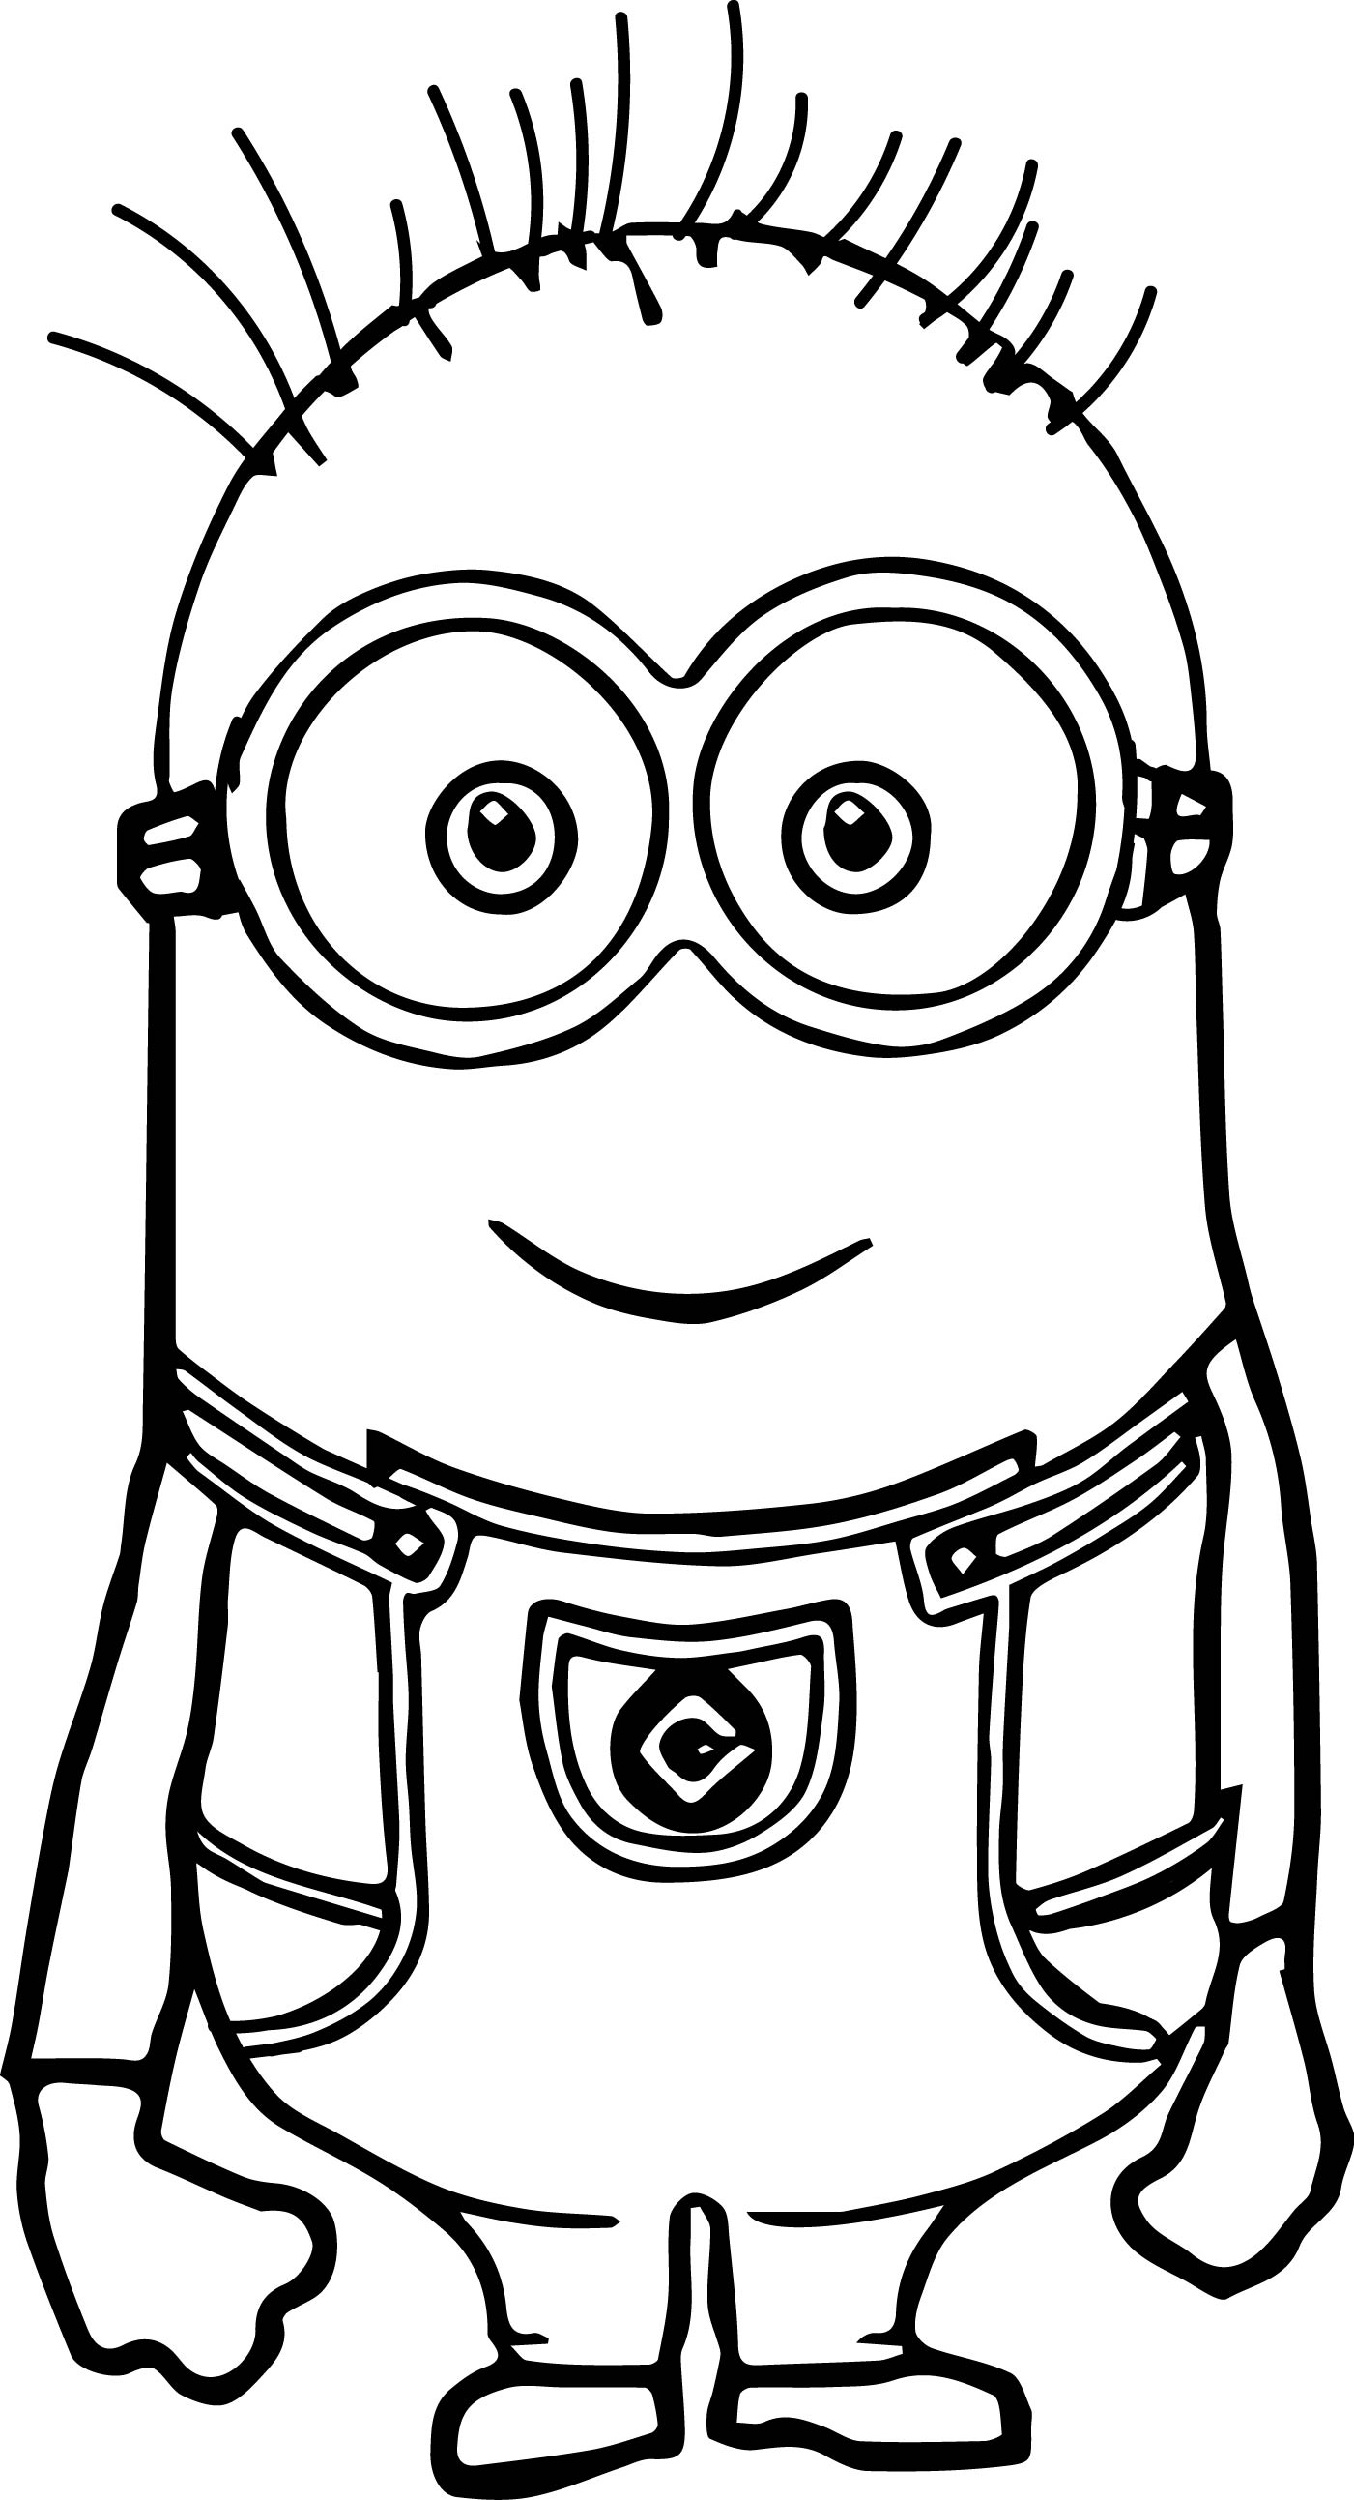 coloring printable minions minion coloring pages for chdren educative printable coloring printable minions